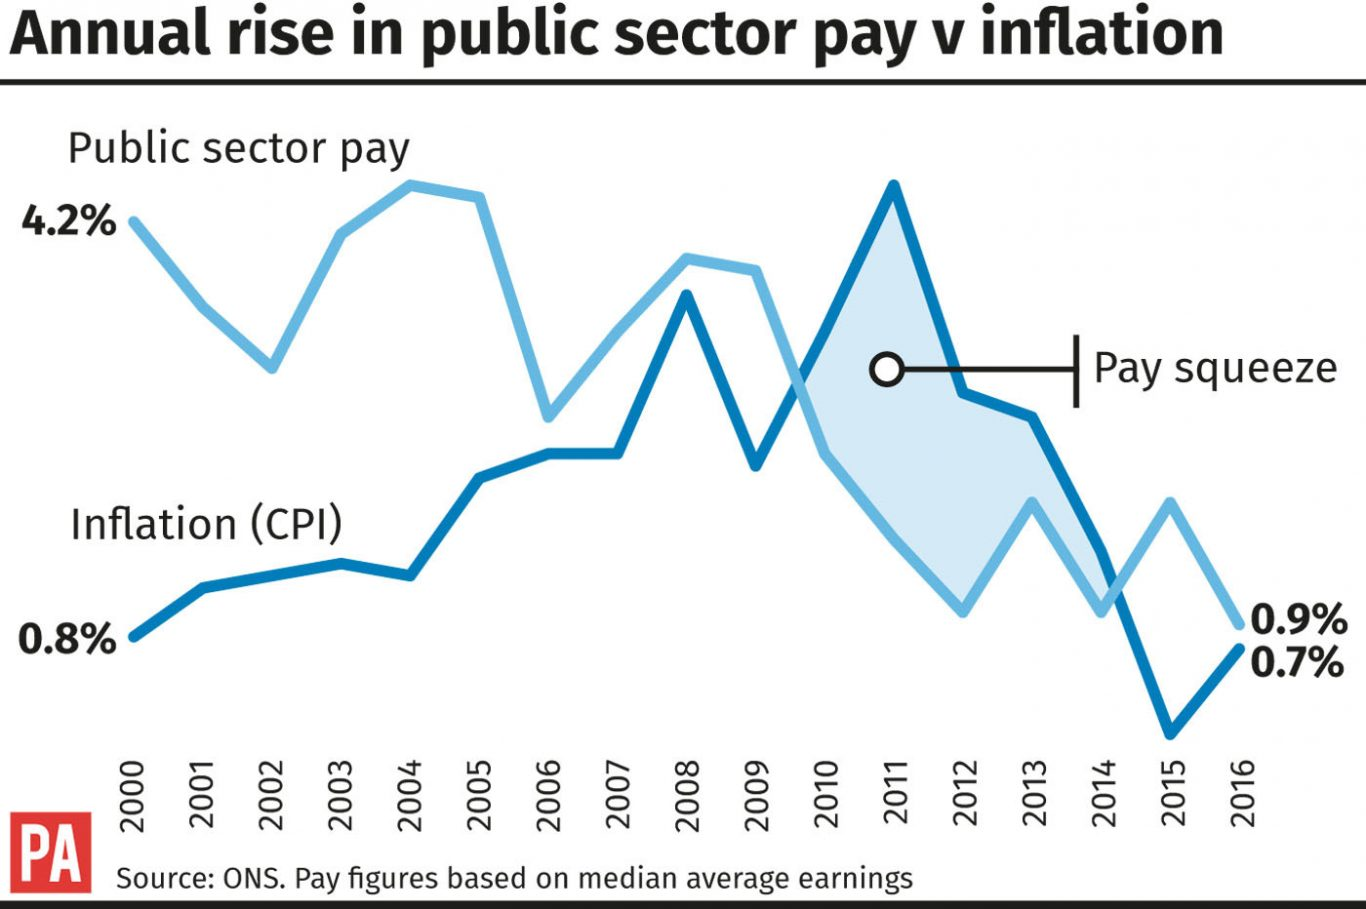 Annual rise in public sector pay v inflation.